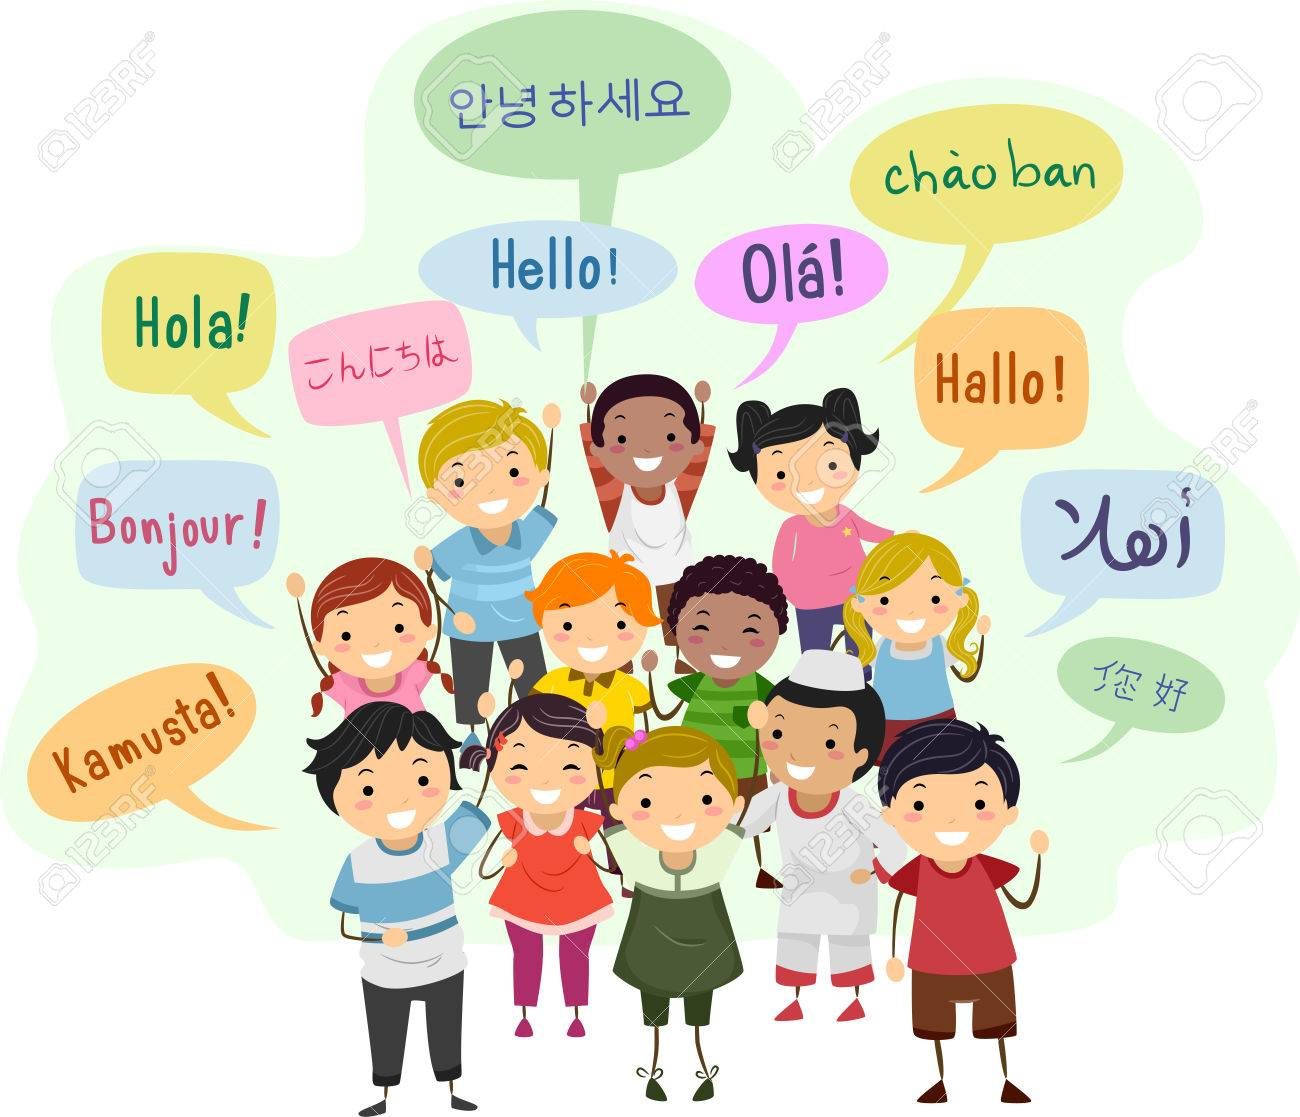 Illustration Of Stickman Kids And Speech Bubbles Saying Hello.. Stock  Photo, Picture And Royalty Free Image. Image 81645204.